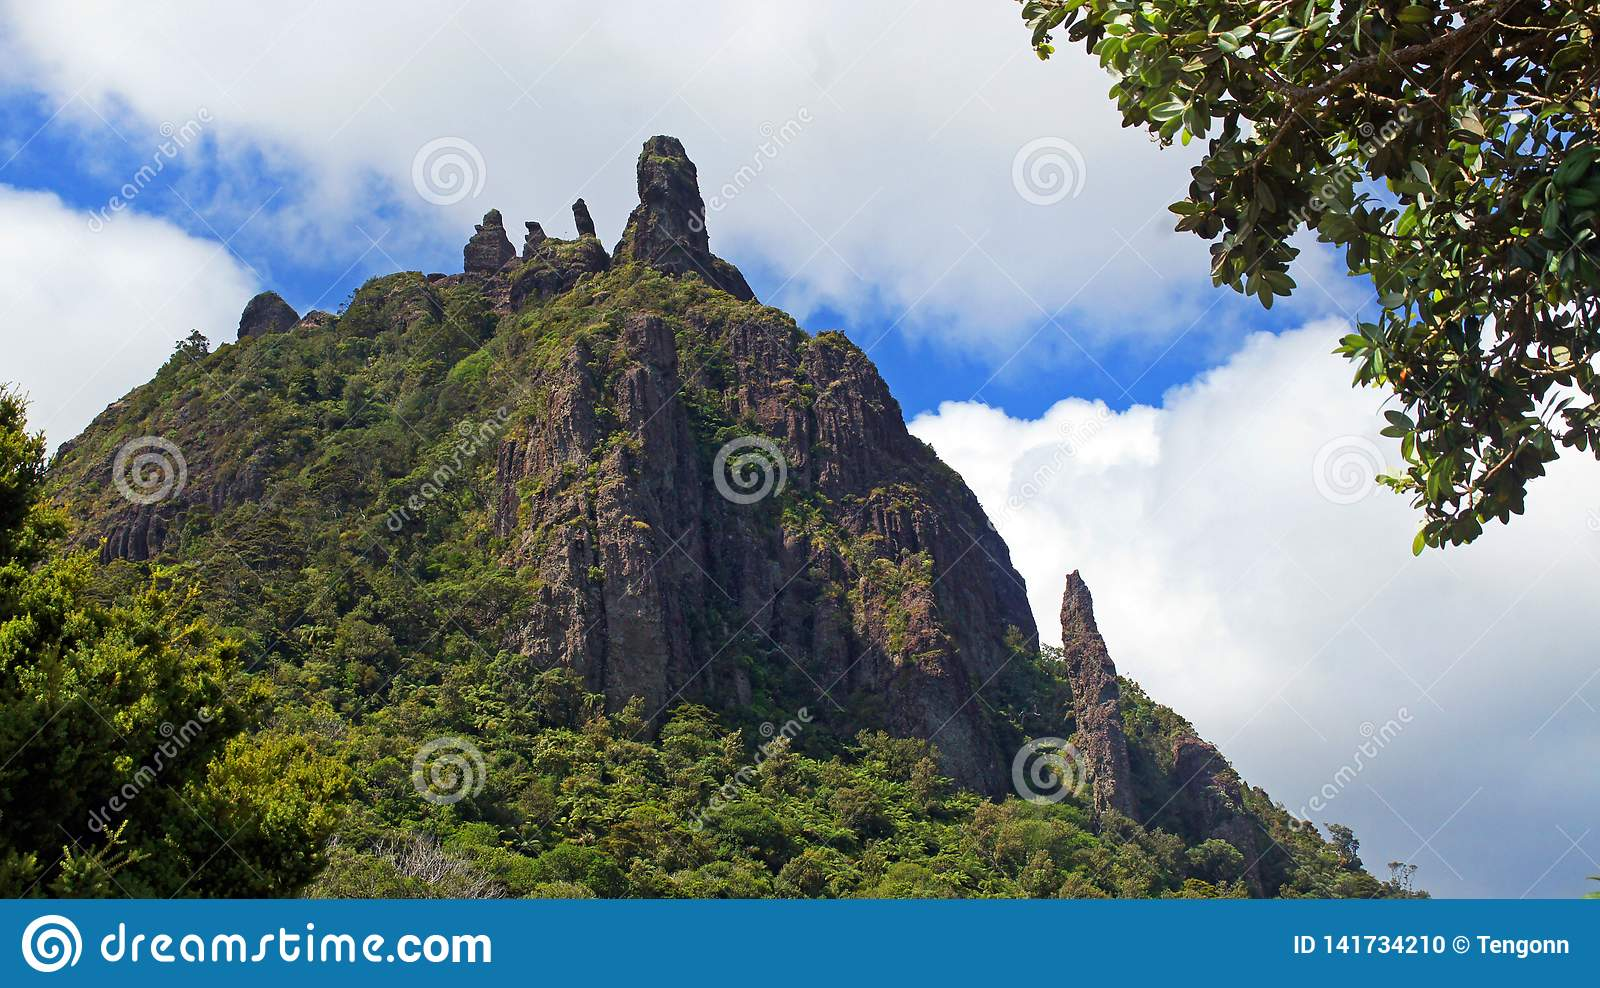 Looking up to the top of Mt Manaia